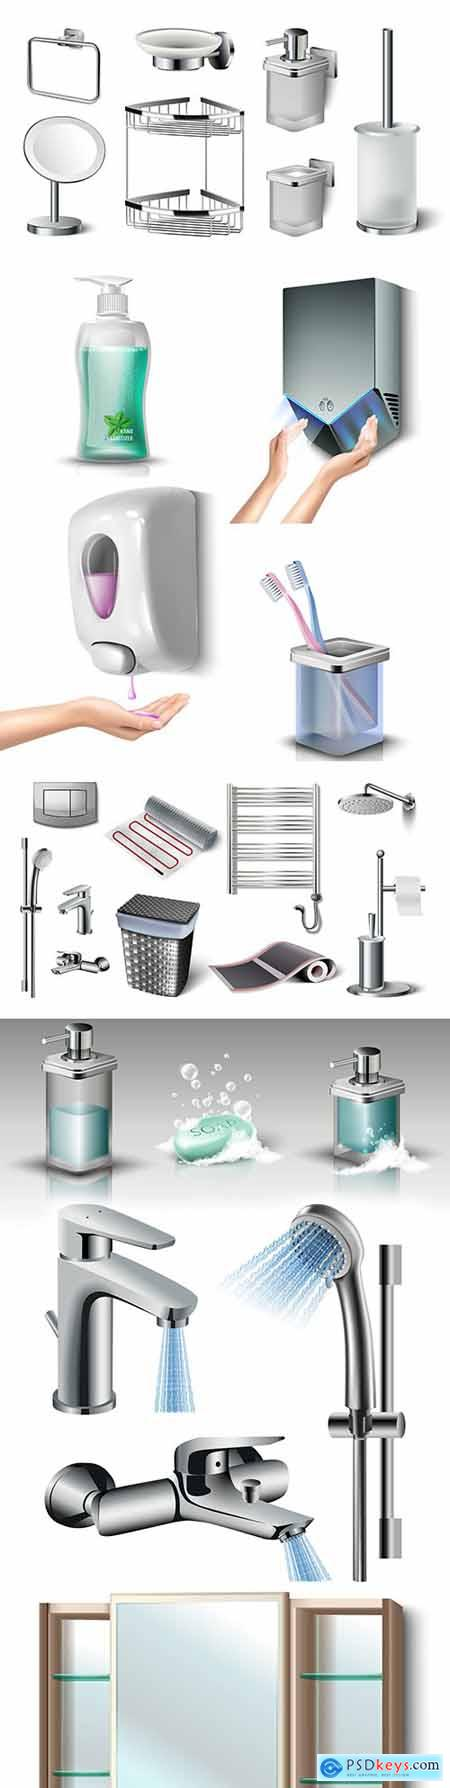 Bathroom and toilet room accessories realistic illustrations